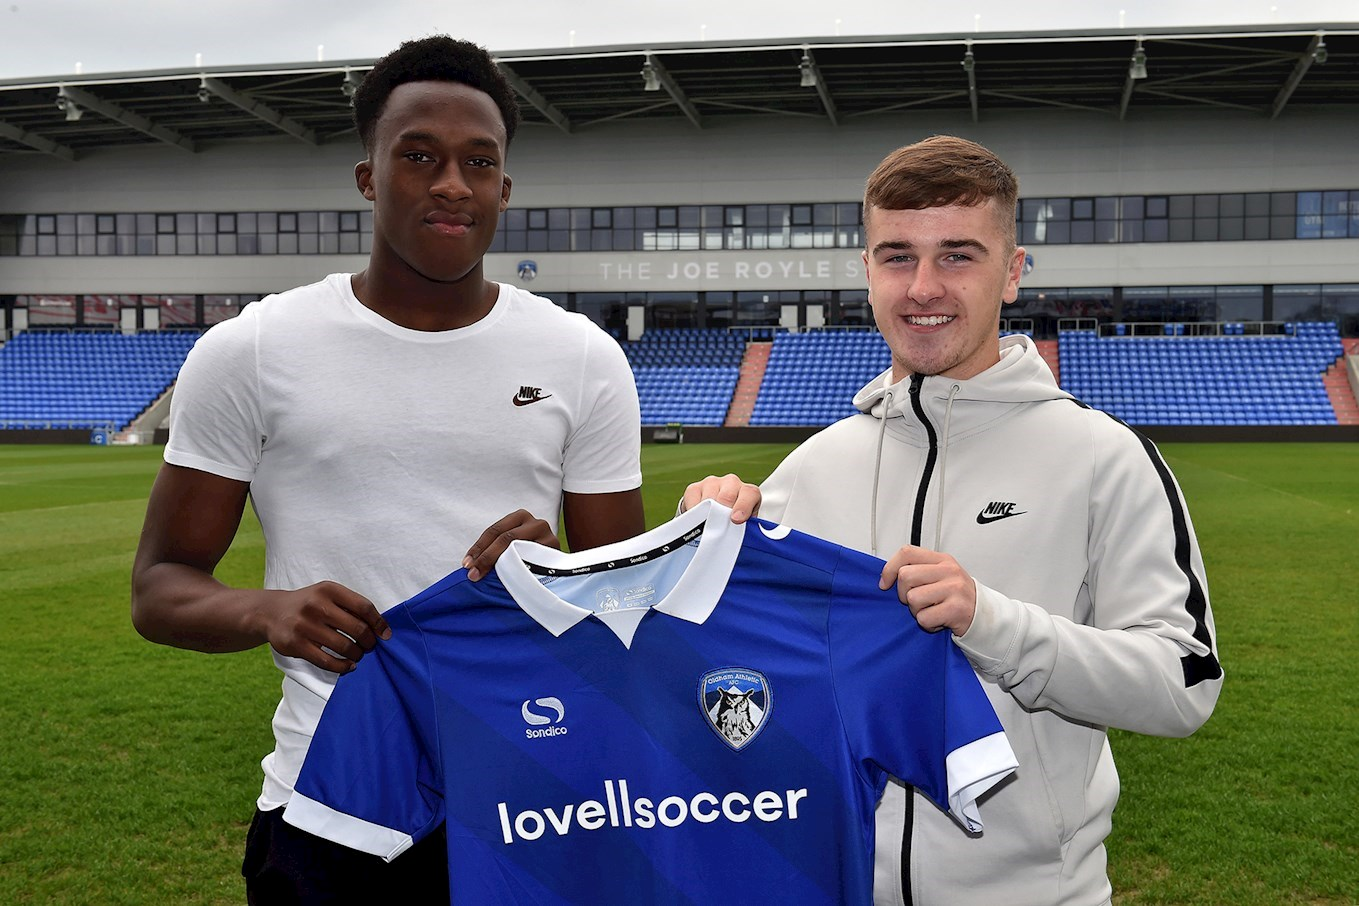 4b881aa961 Oldham Athletic are delighted to announce that youth team products Harry  Robinson and Javid Swaby-Neavin have signed professional contracts with the  club.